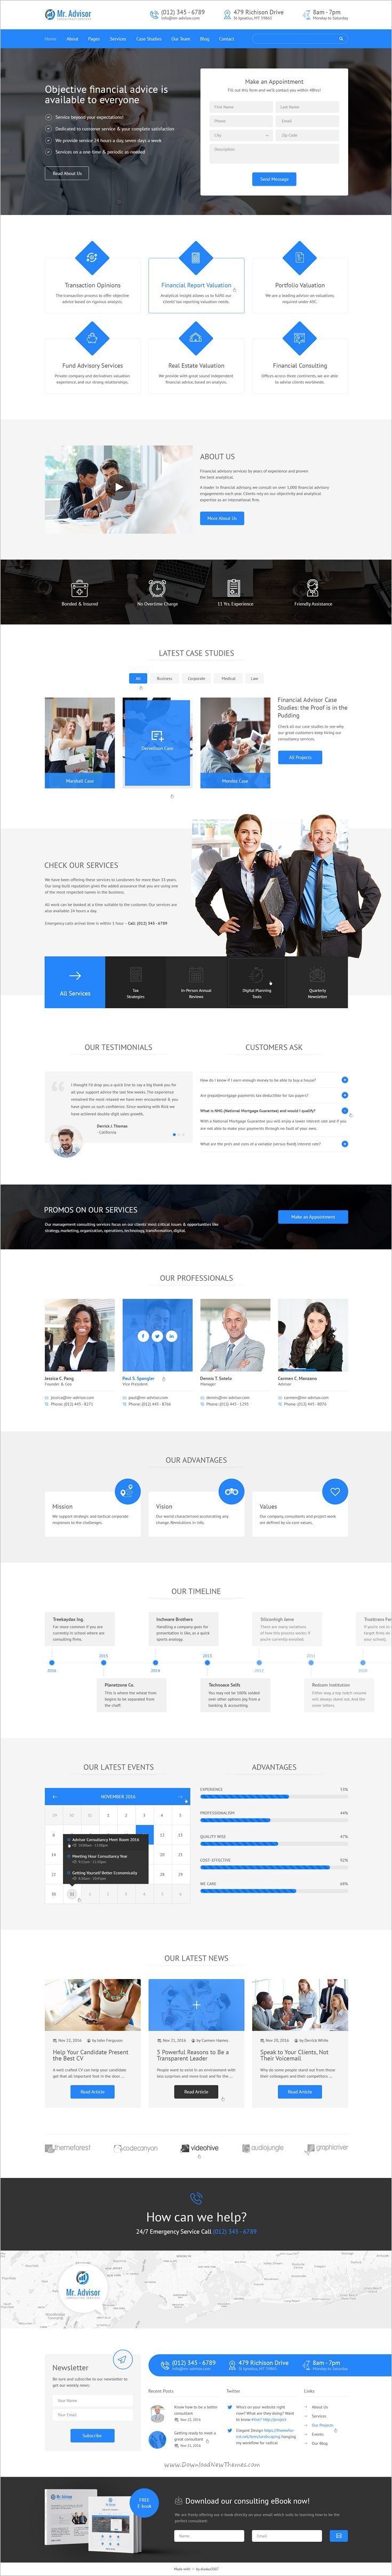 Mister Advisor is a wonderful #PSD Template especially designed for business #consultancy #niche companies websites download now➩ https://themeforest.net/item/mister-advisor-consulting-and-finance-template/19143595?ref=Datasata